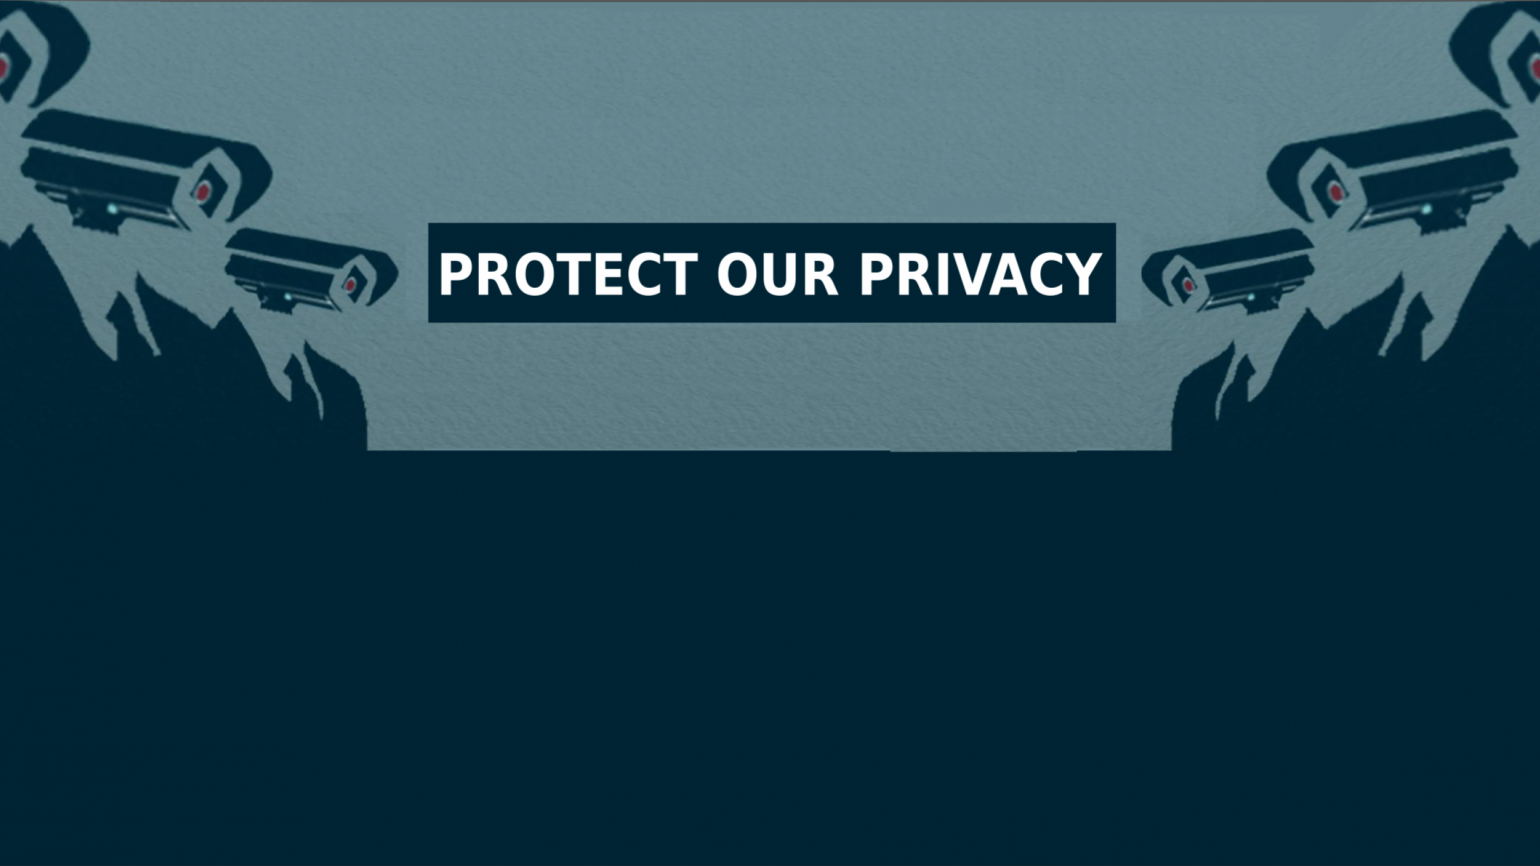 Protect Our Privacy